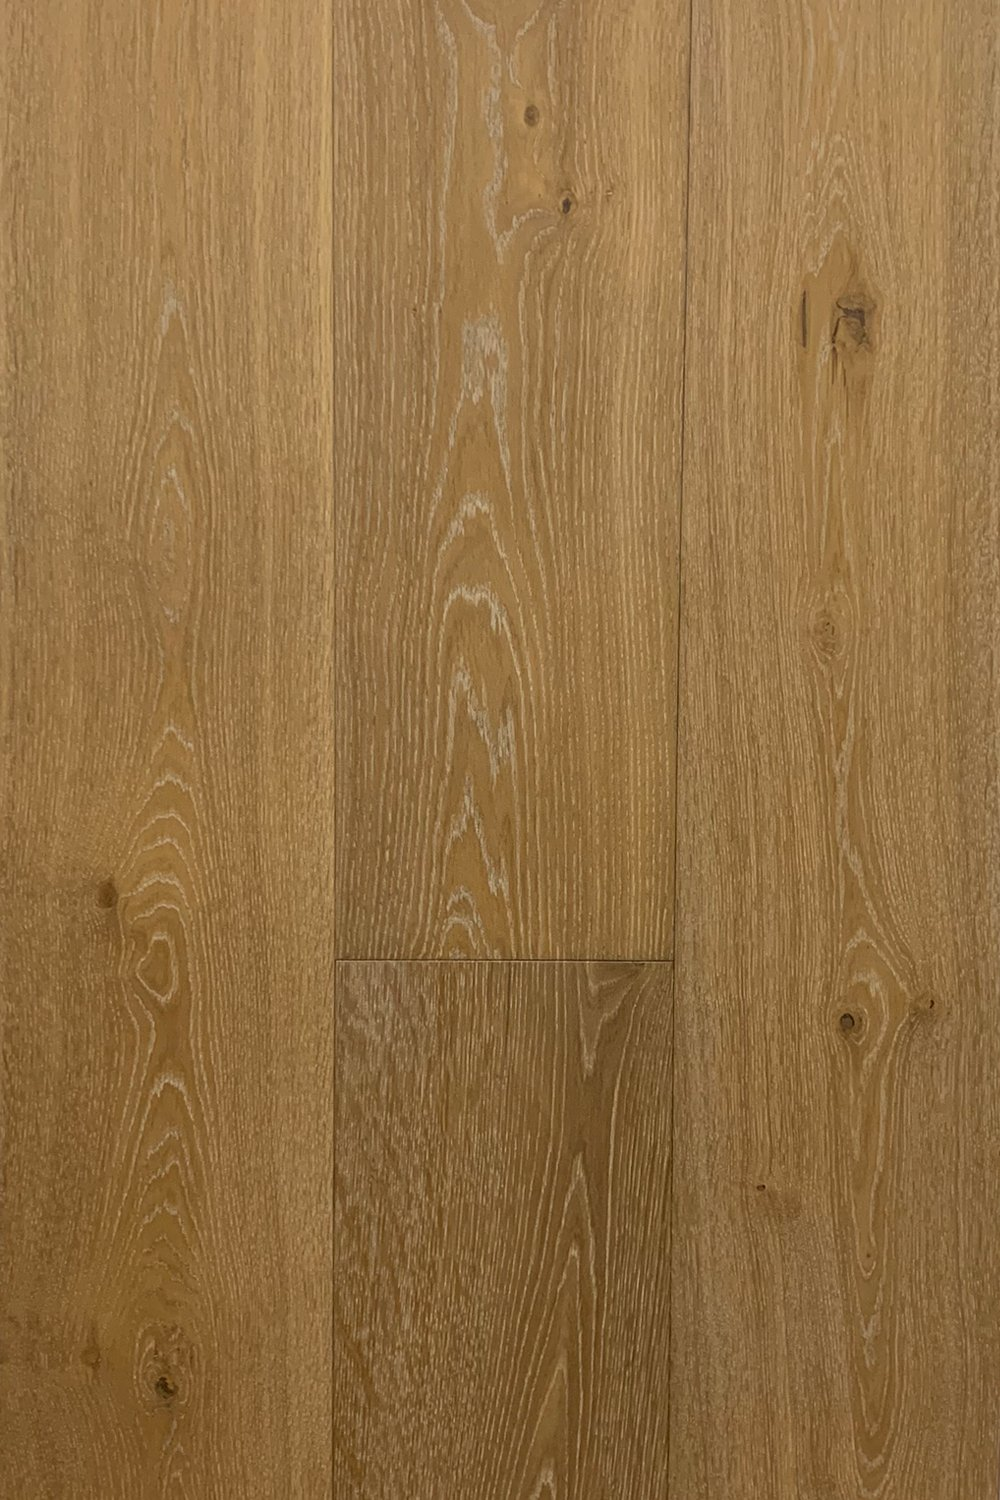 UV Lacquer Pordenone 5/8 in. Thick x 9-1/2 in. Wide x Varying Length Floating Engineered European Oak Hardwood Flooring (22.76 sq. ft. / box) - 810001966089